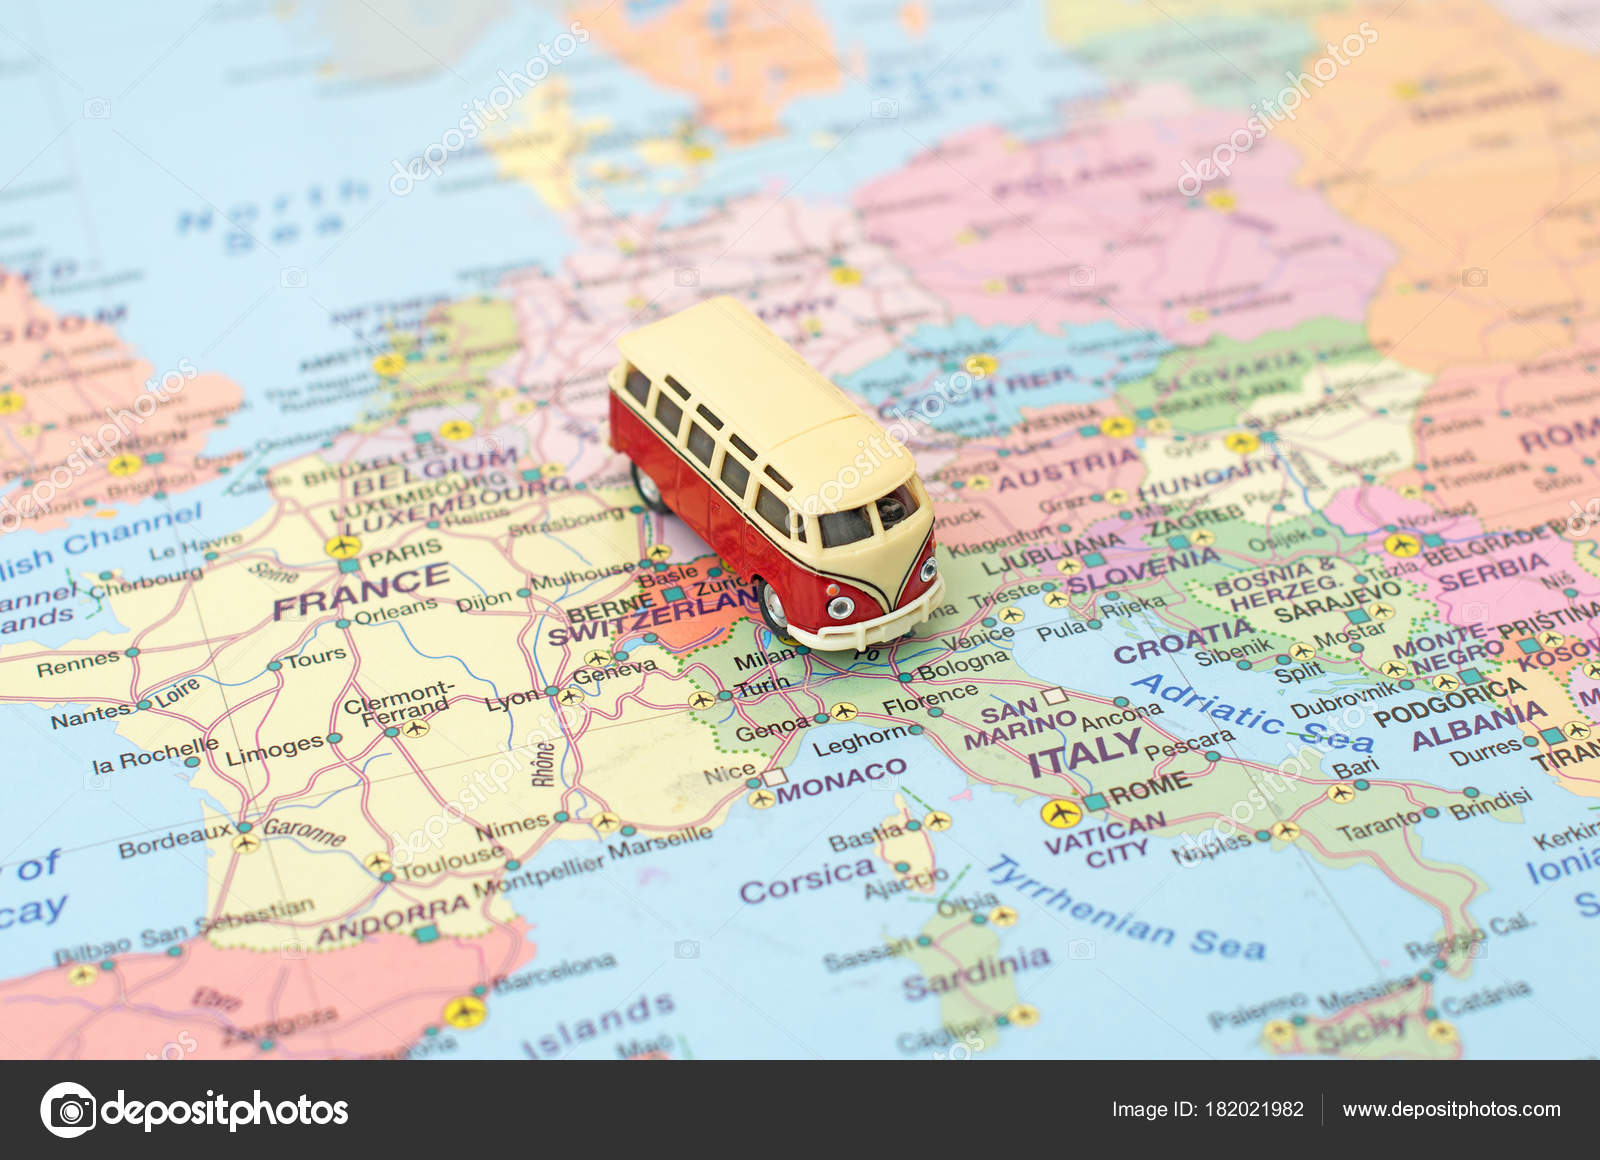 Bus Clermont Ferrand Bordeaux Concept Of Europe Car Trip Car Is On The Map In Italy Stock